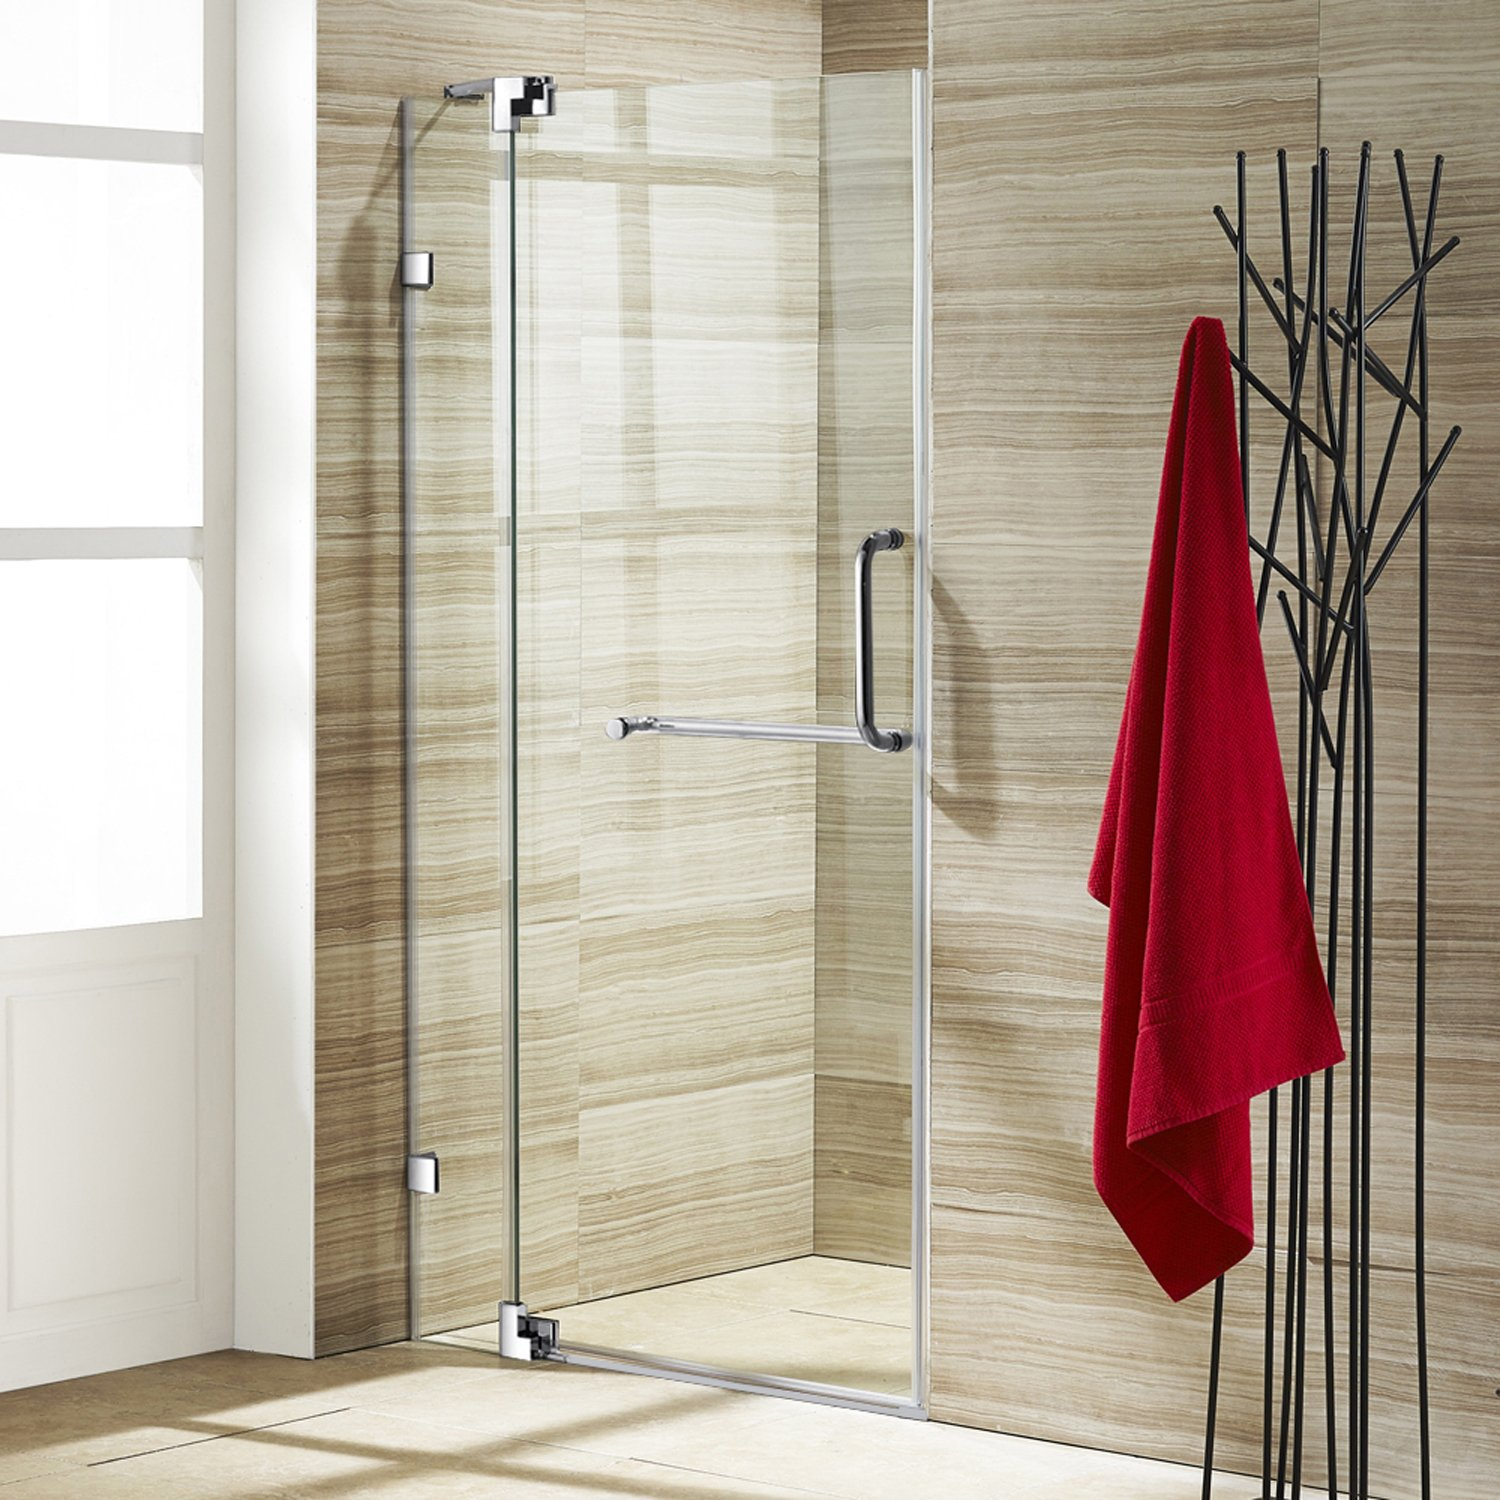 Vigo pirouette 30 to 36 in frameless shower door with 375 in vigo pirouette 30 to 36 in frameless shower door with 375 in clear glass and chrome hardware amazon planetlyrics Choice Image